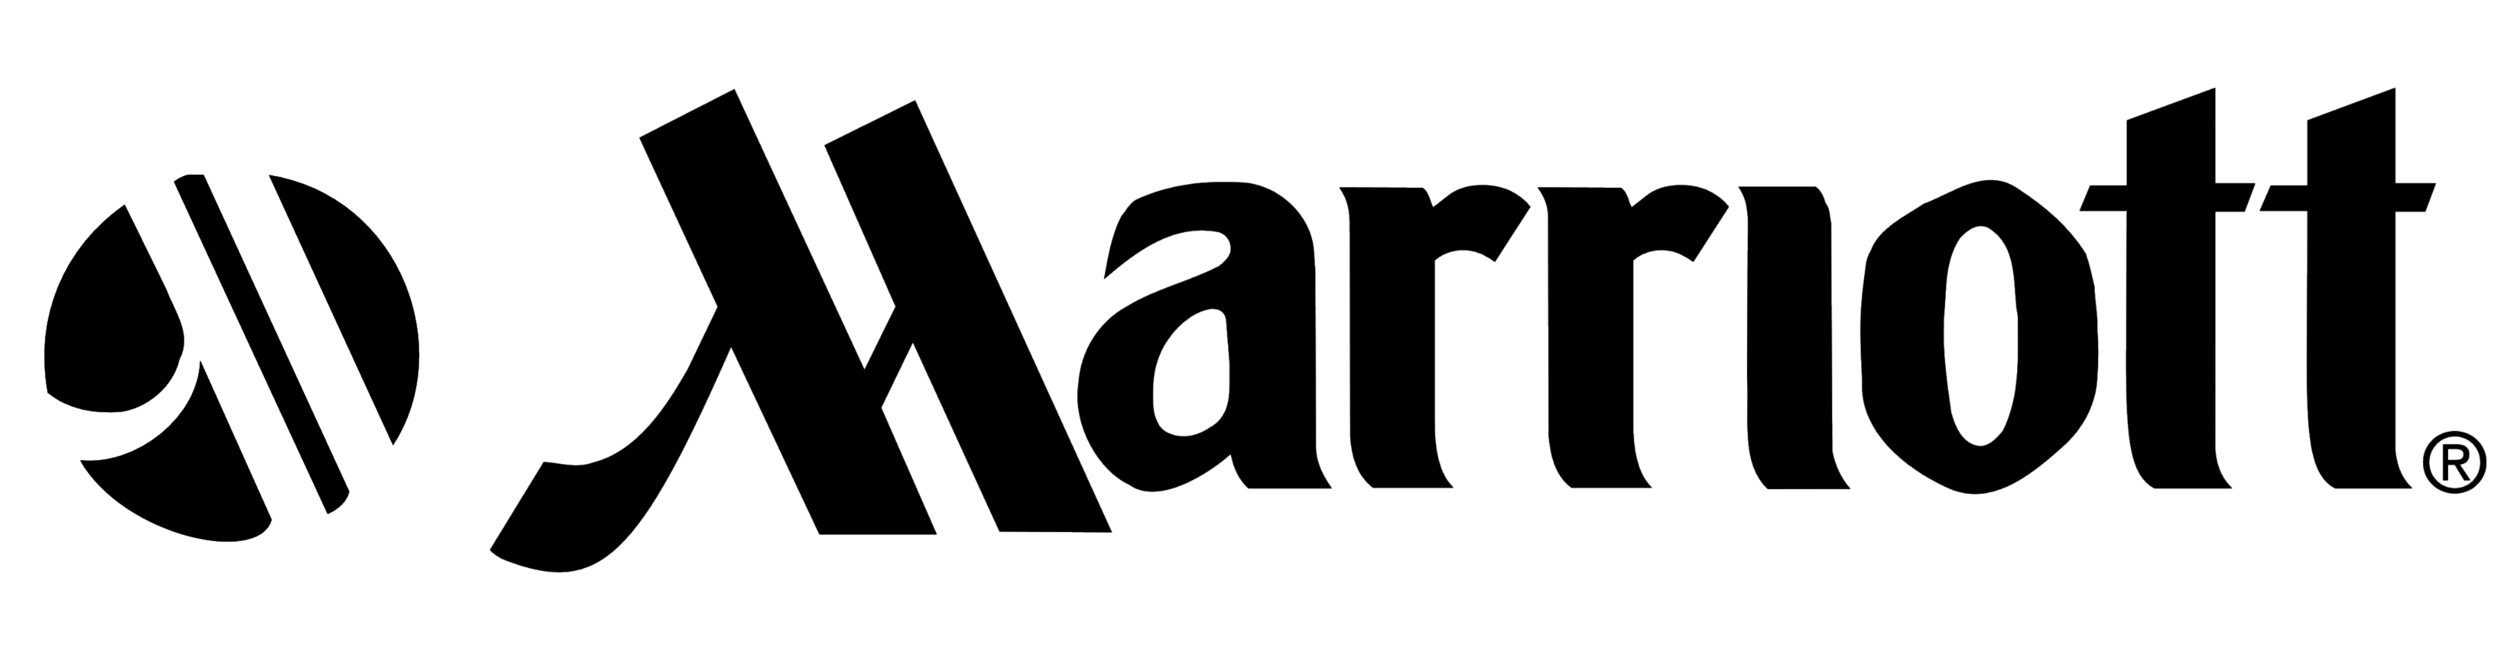 Marriott_logo_symbol_black.png